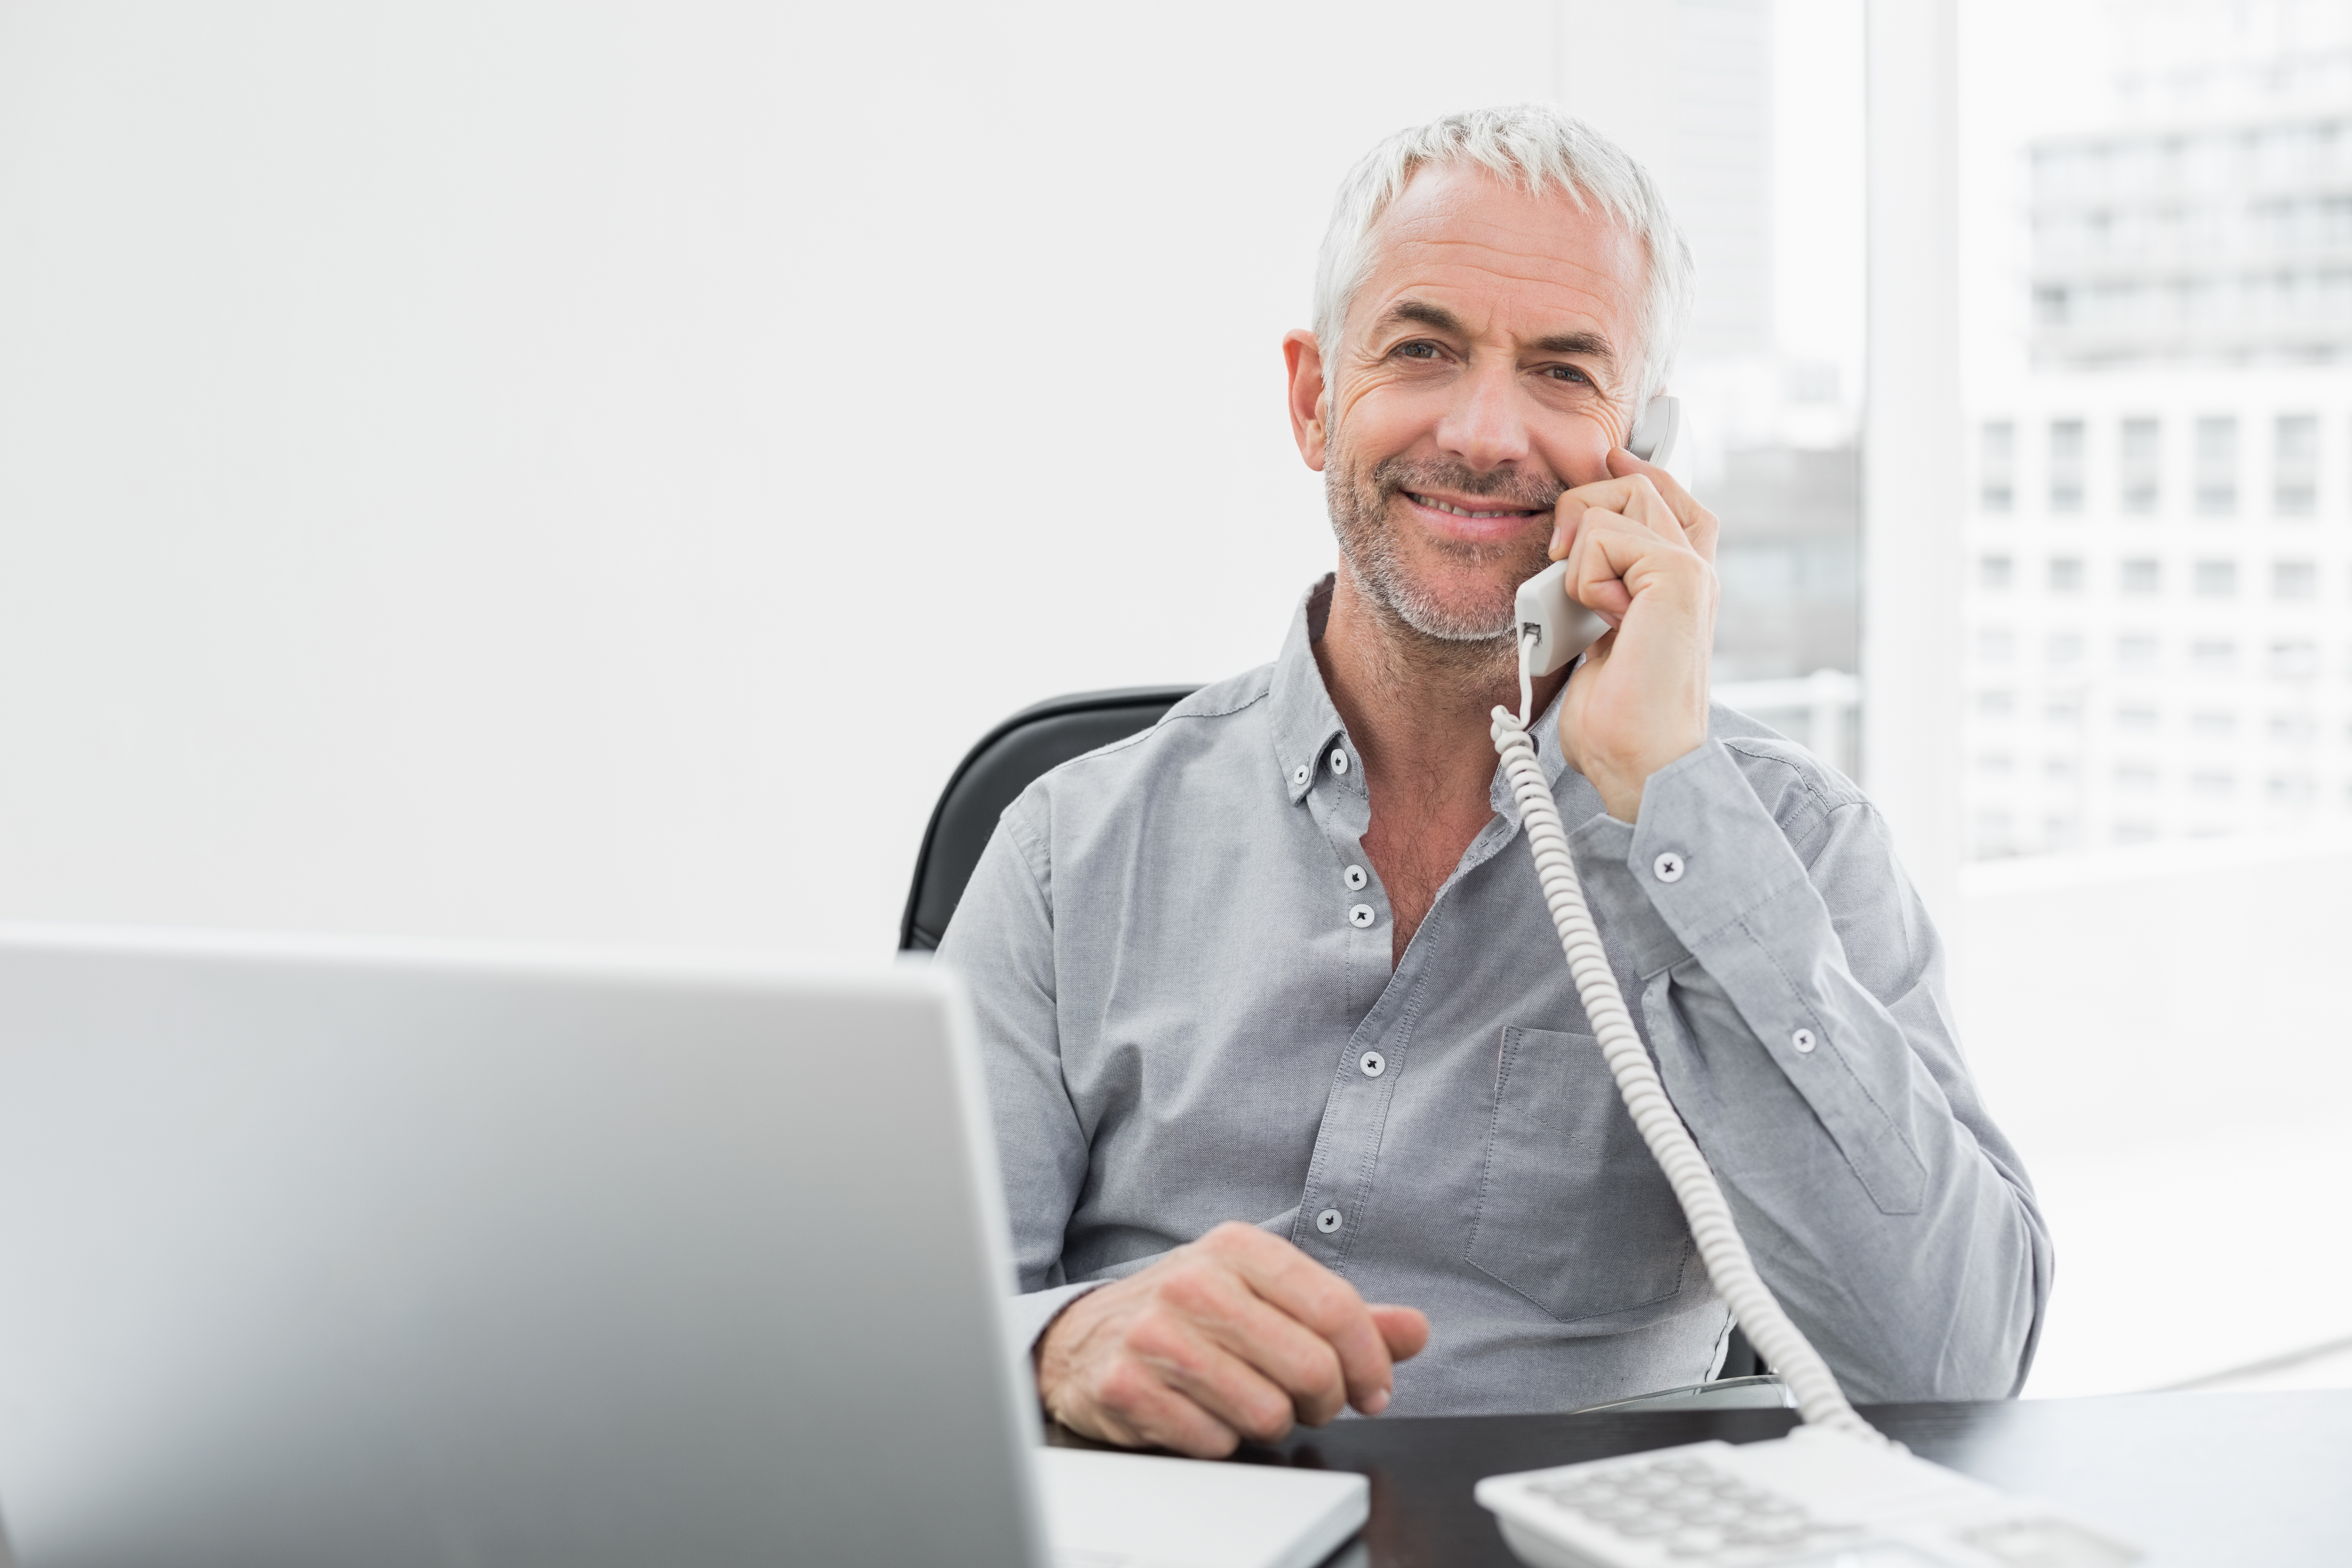 portrait of a smiling mature businessman on call in front